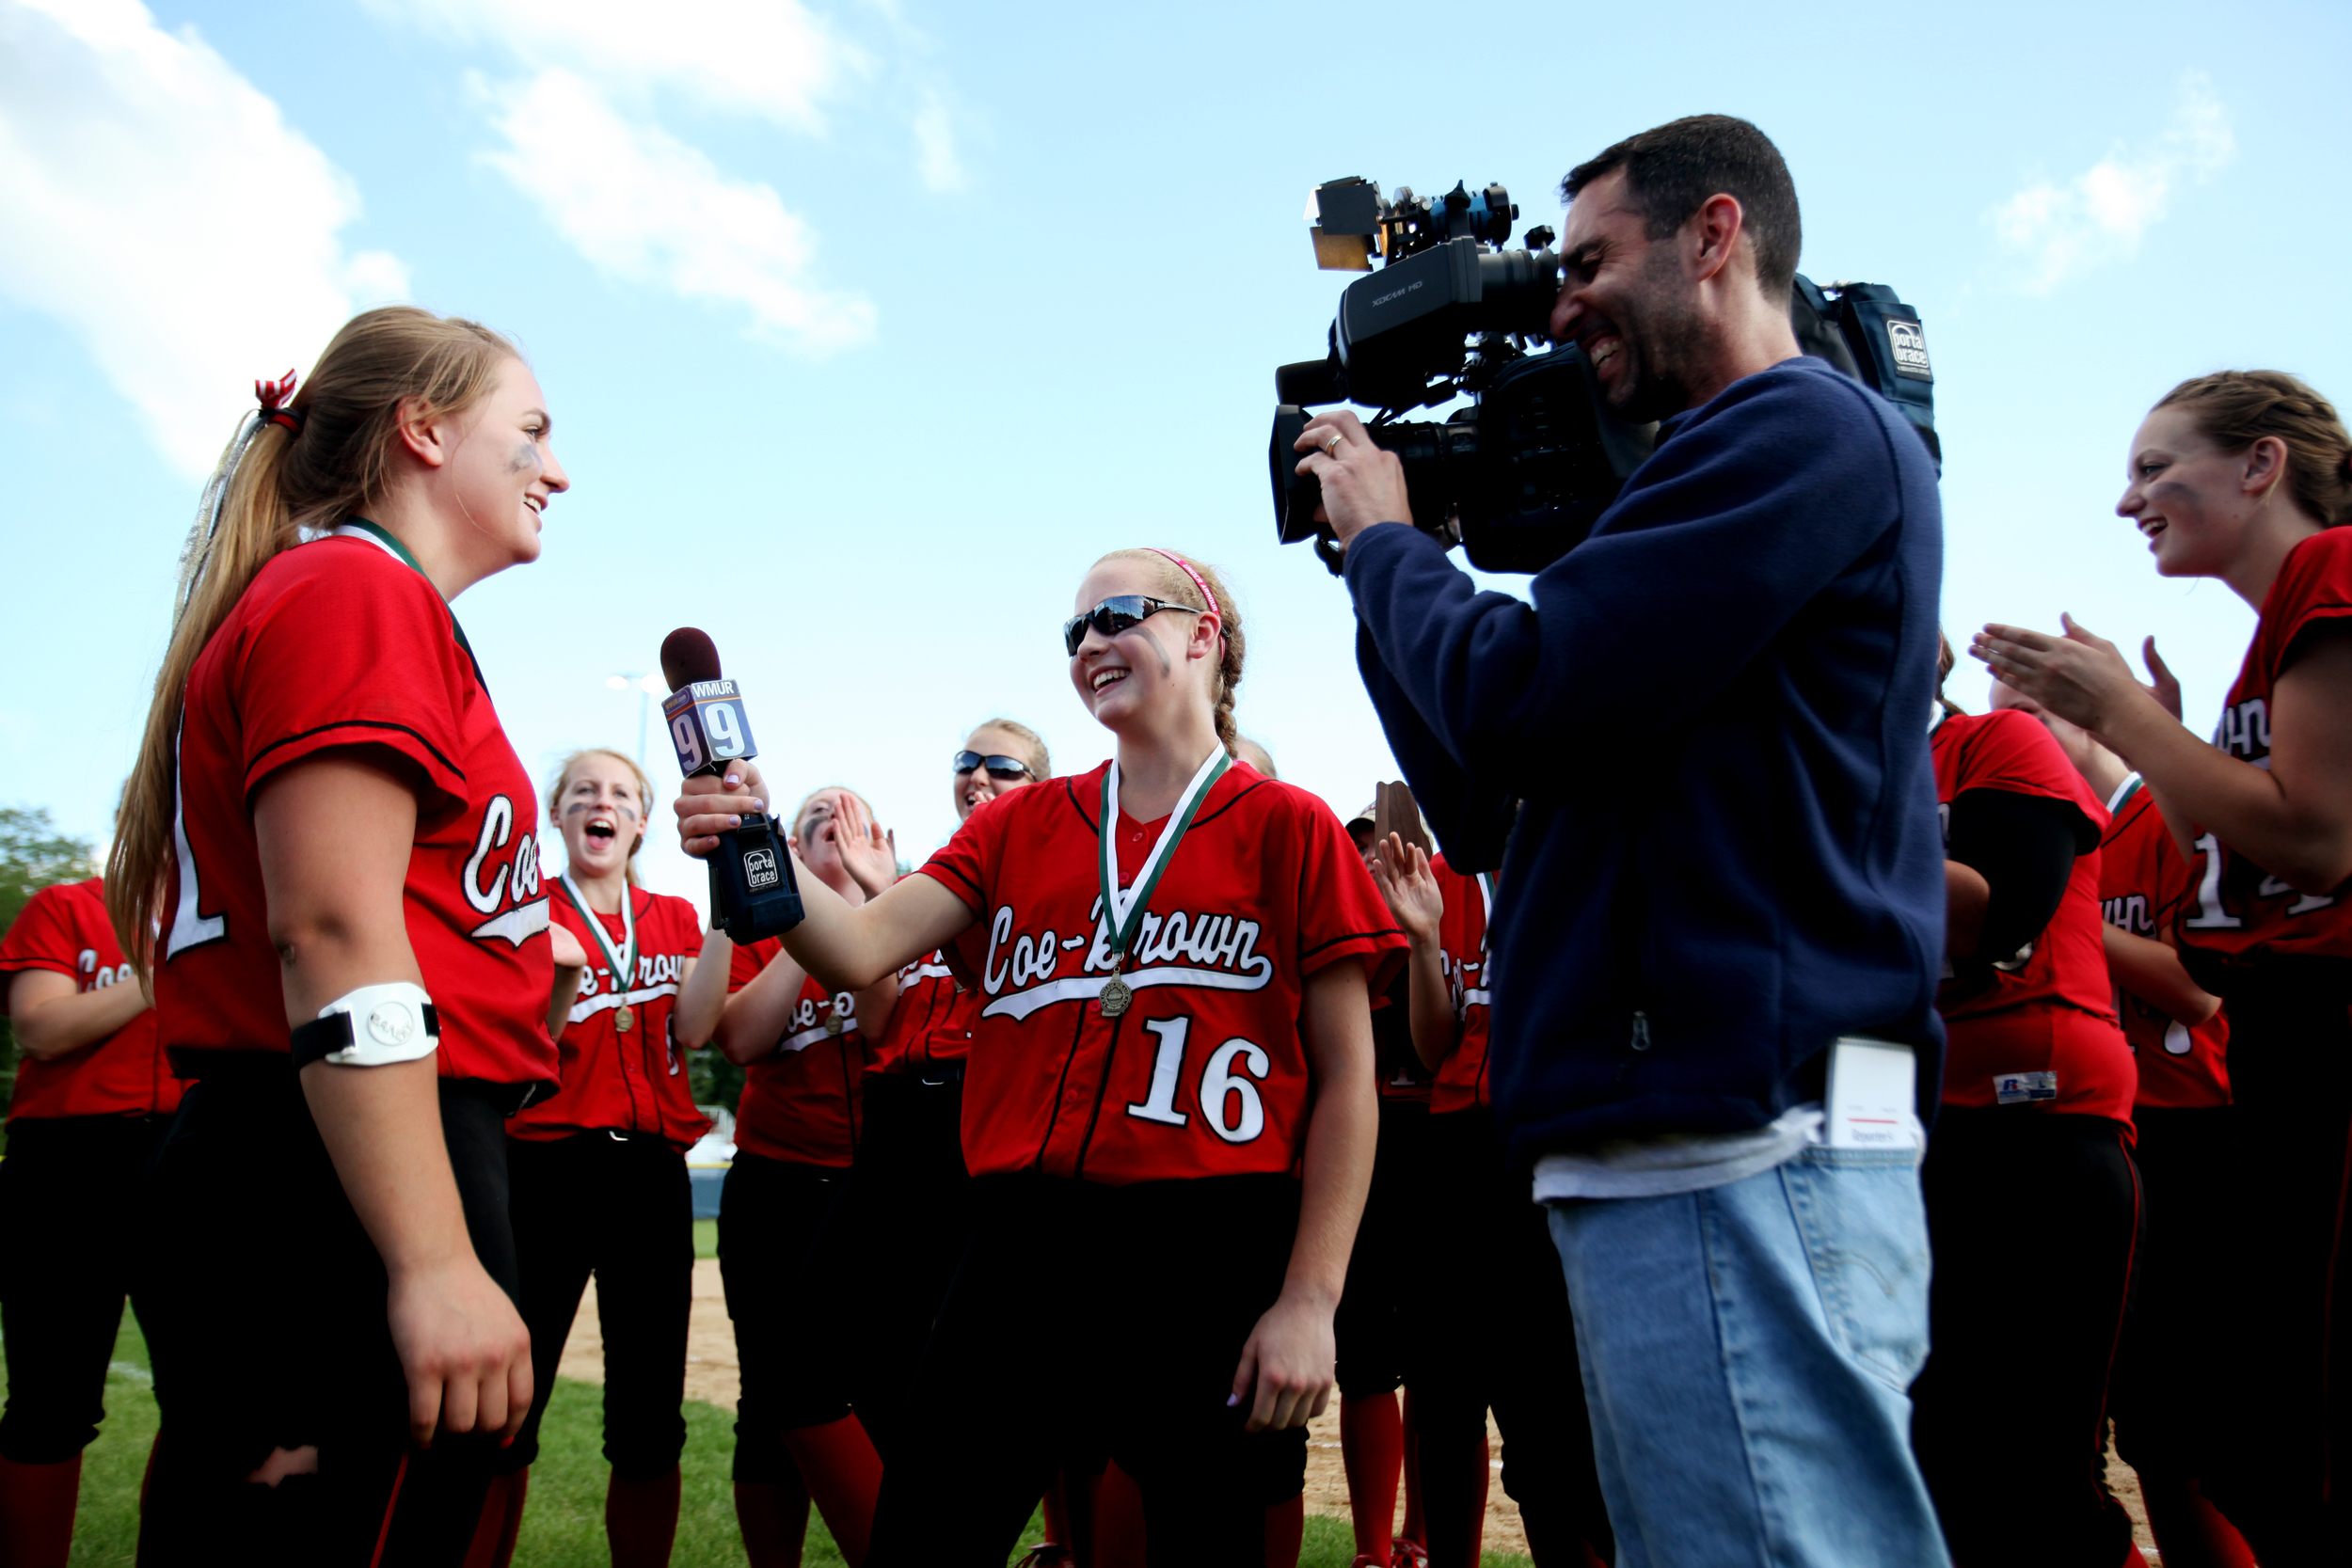 Coe-Brown's Catherine Langdon (middle) holds the microphone to teammate Lauren Jones as she is interviewed by WMUR's Jon Arnold after they won the Division II softball championship against John Stark at Southern New Hampshire University in  Hooksett, N.H. on June 14, 2014. Coe-Brown won 6-5.